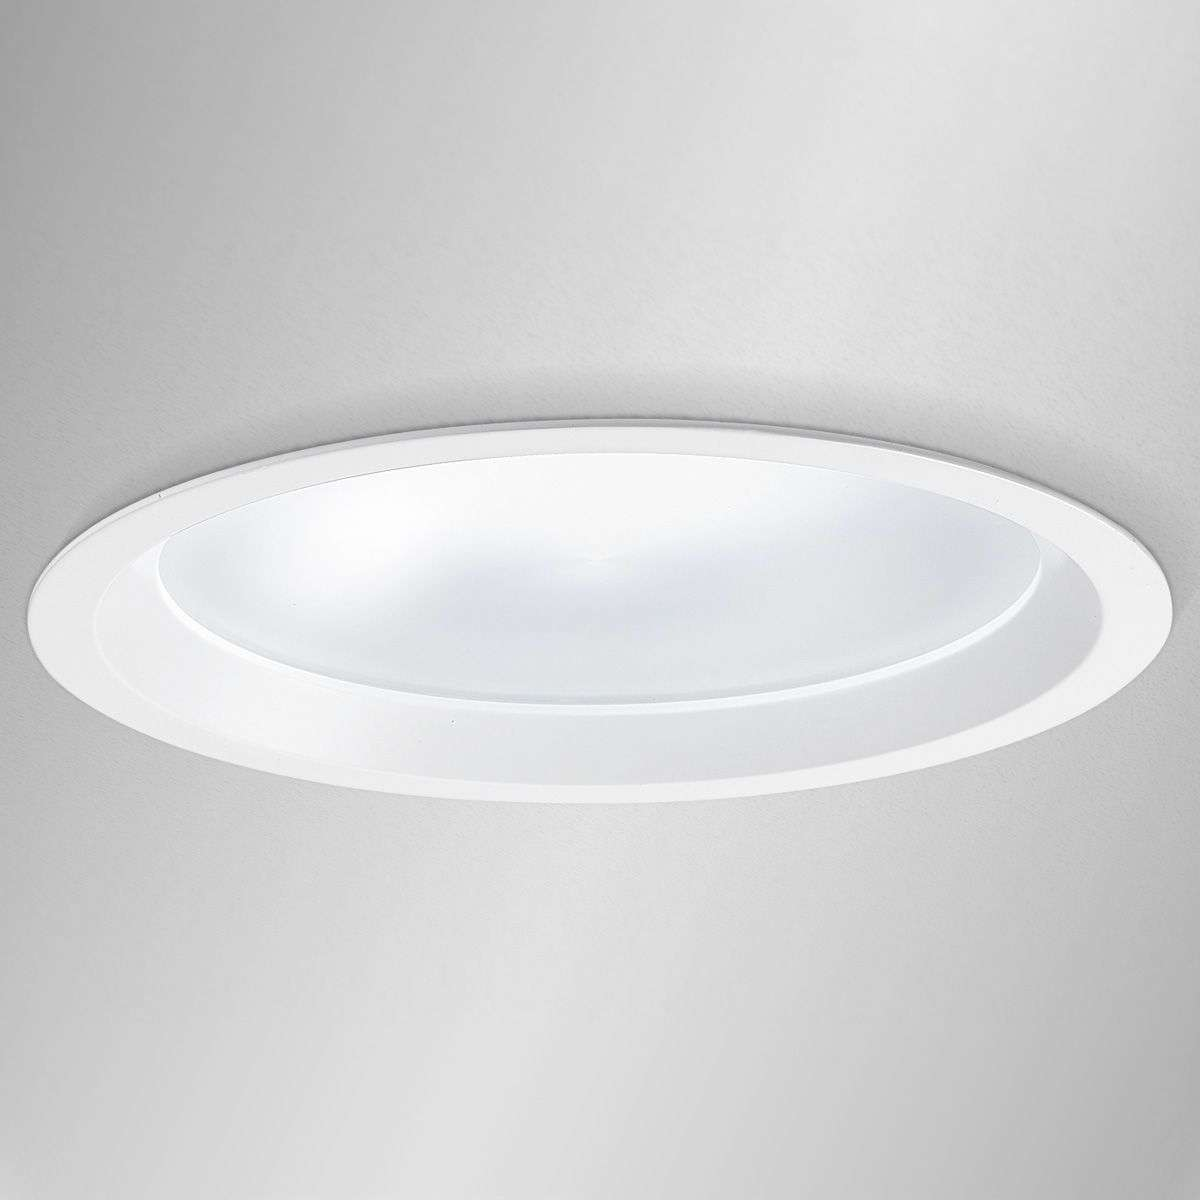 23 cm diameter strato 230 led recessed downlight lights 23 cm diameter strato 230 led recessed downlight 3023096 31 aloadofball Images